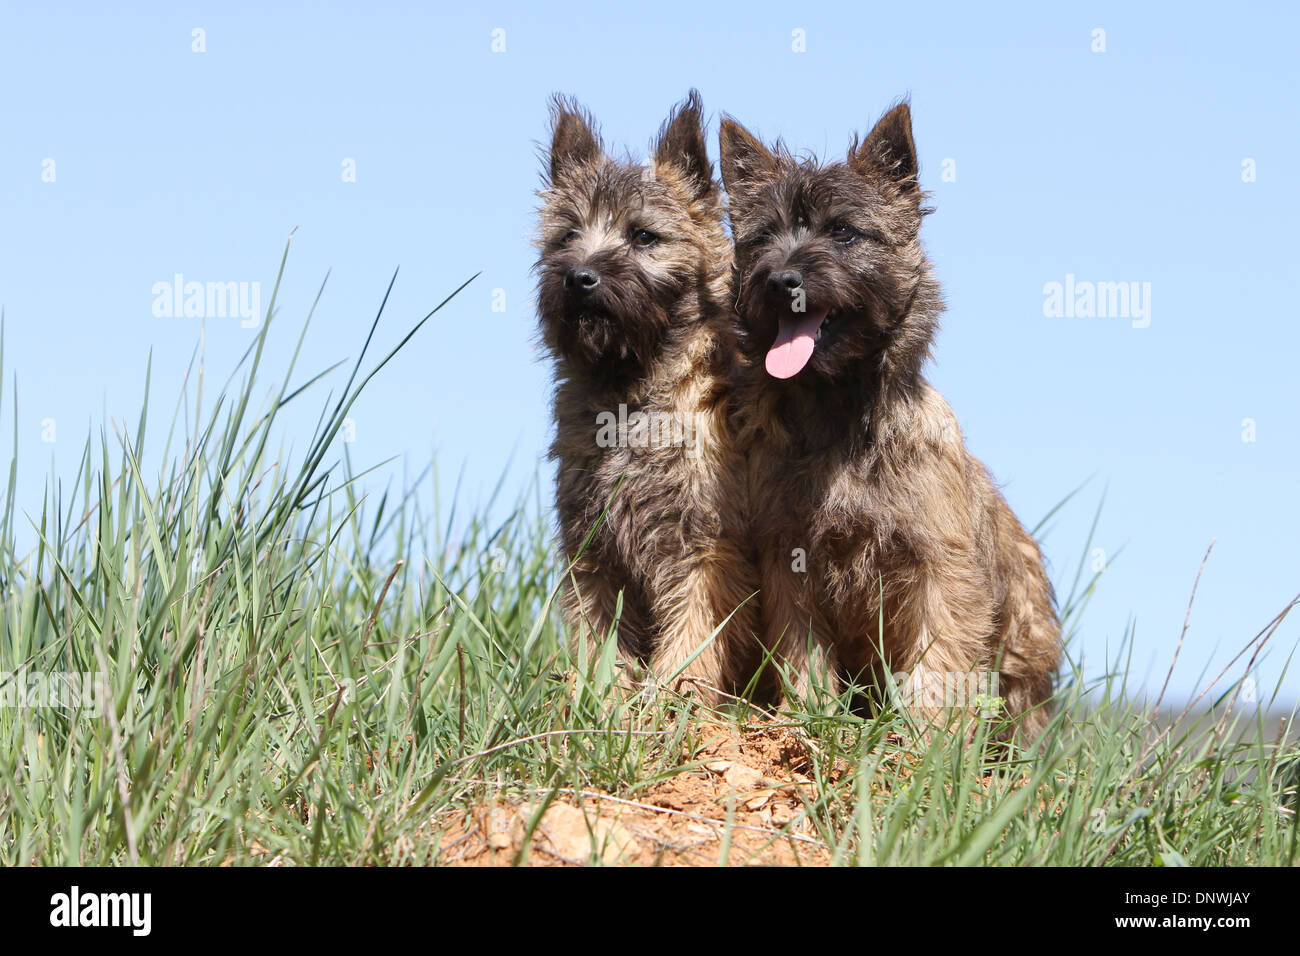 Two Cairn Terrier Puppies Sitting Stock Photos & Two Cairn